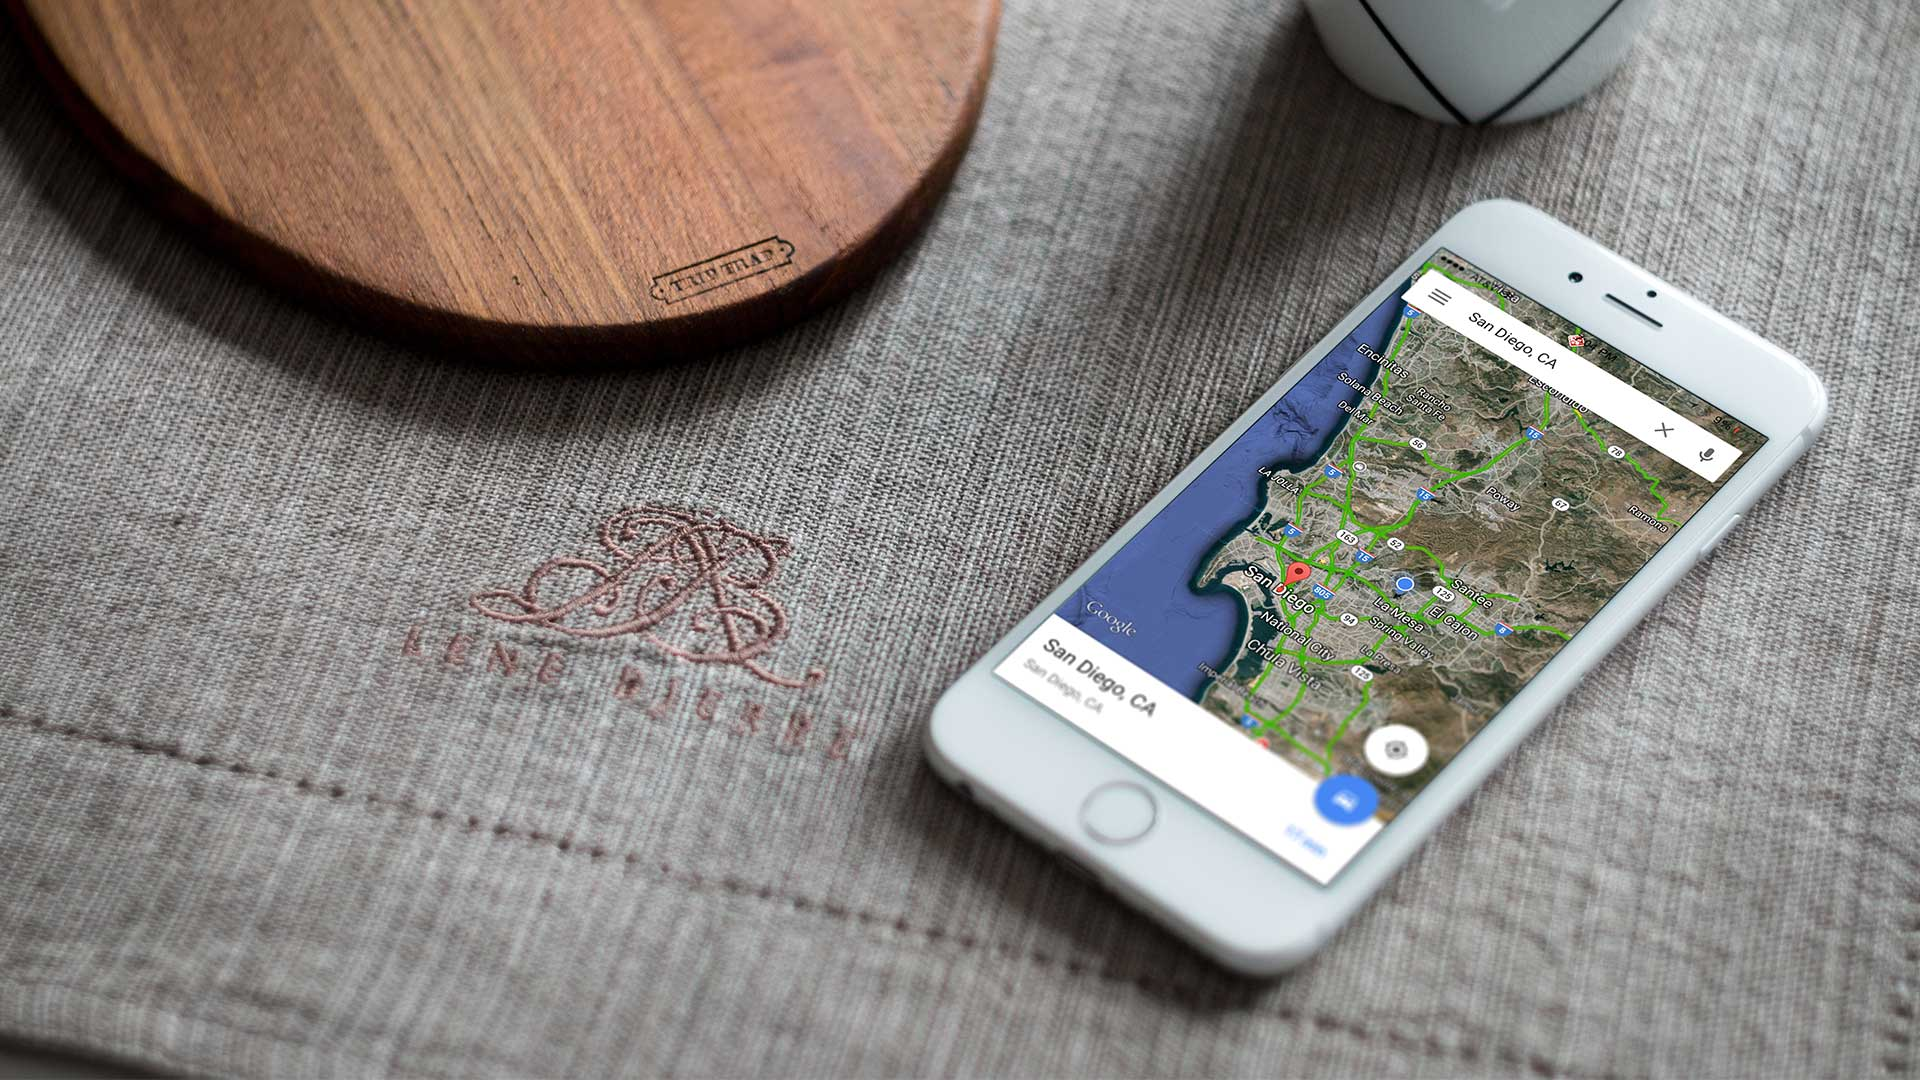 5 sätt att fixa Google Maps kraschar på iPhone